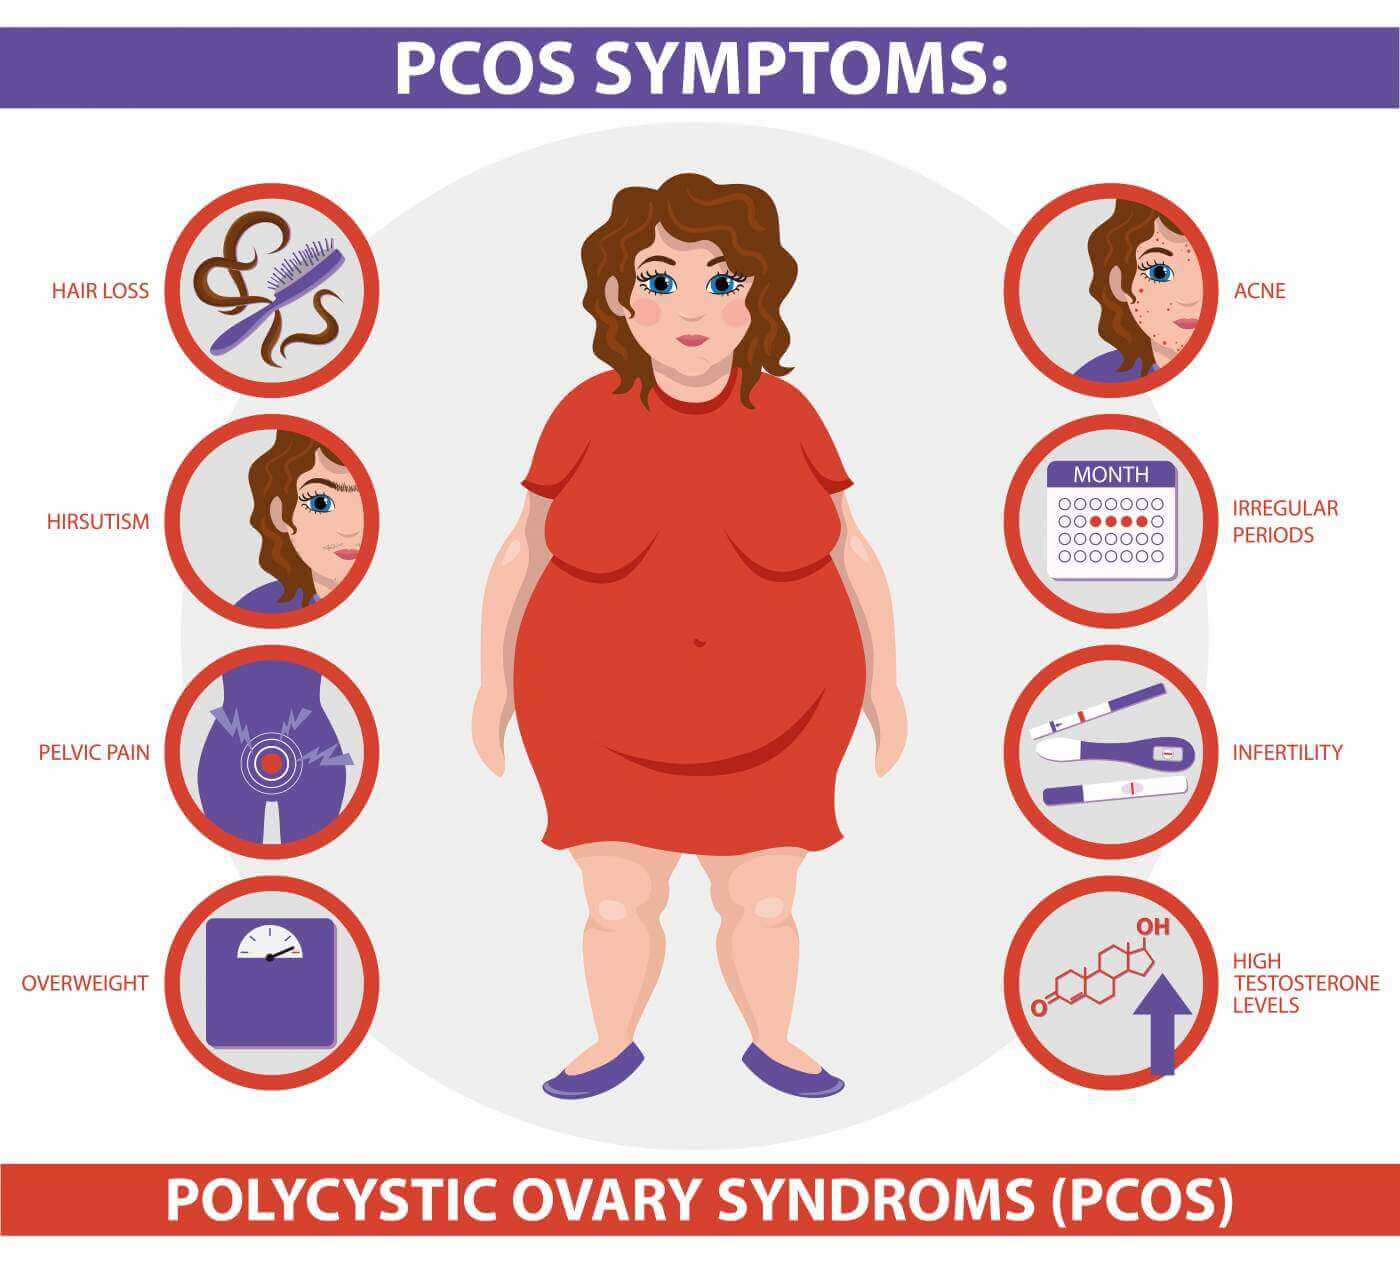 Pcos symptoms infographic